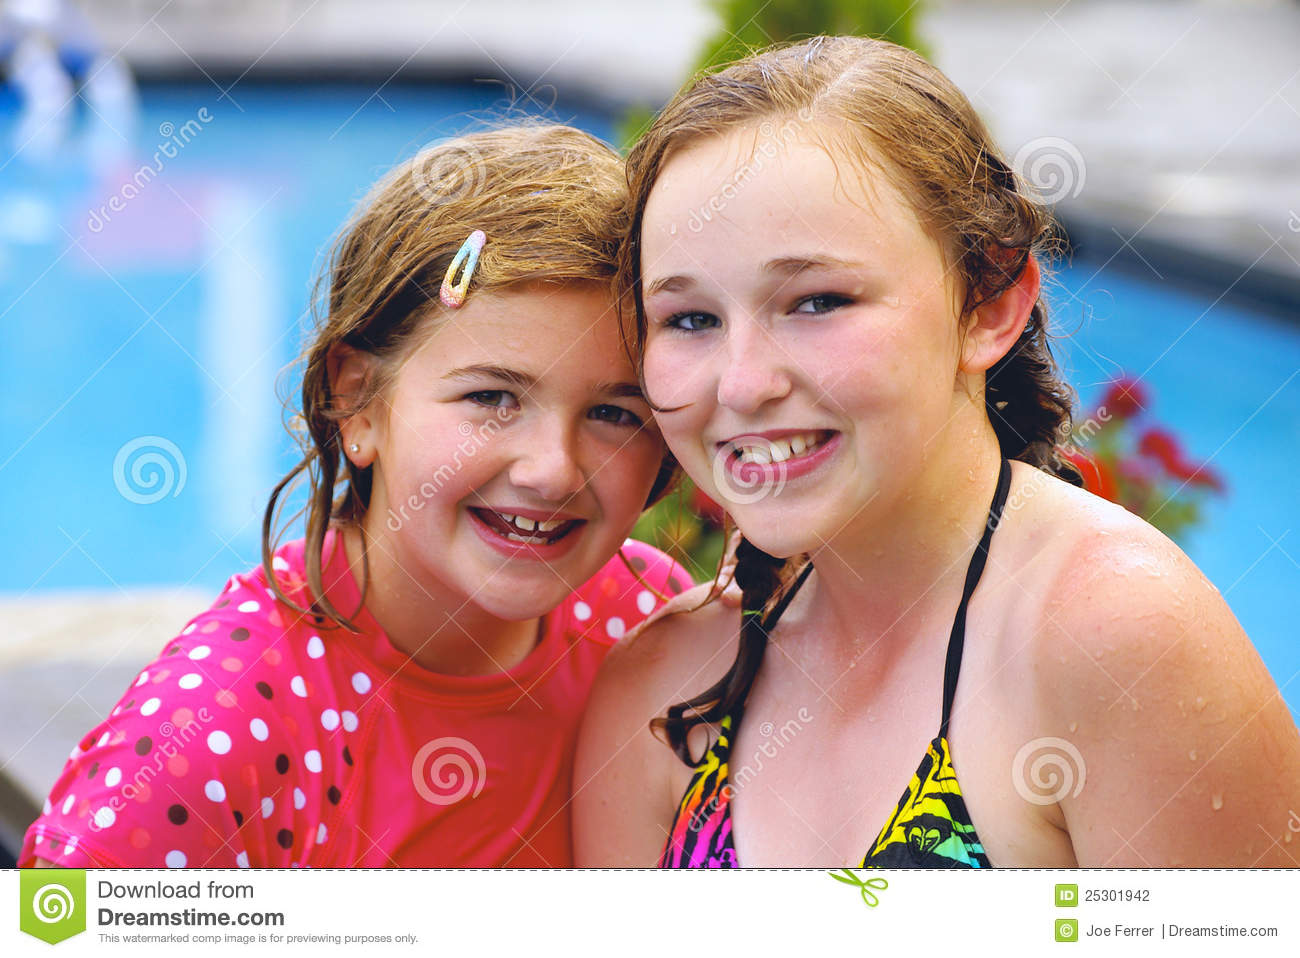 Young Girls Smiling at Pool Side